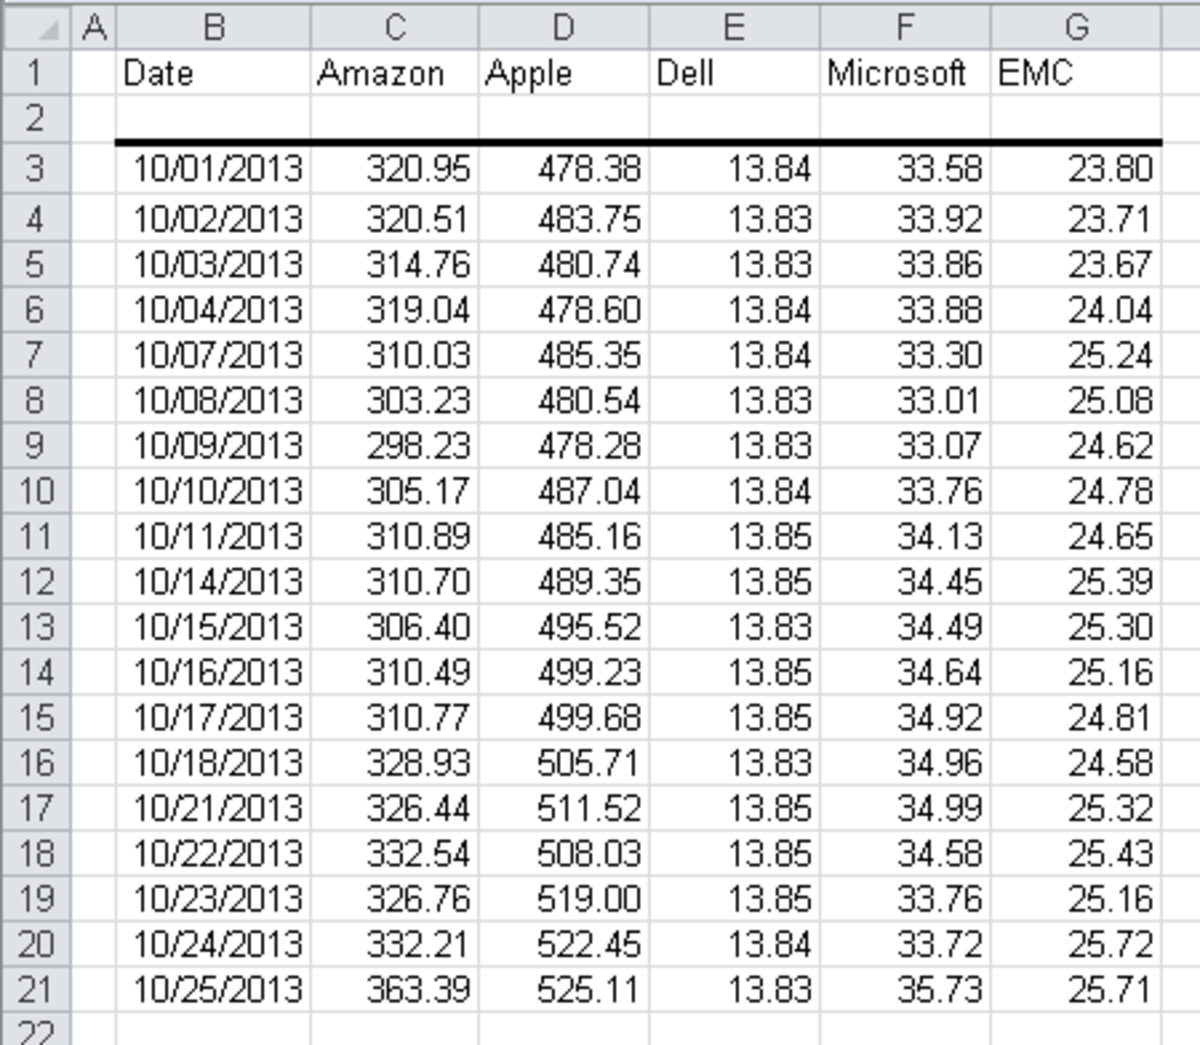 Raw data in Excel 2010 showing the Daily Close value for each of our stocks, ready to be represented in a series of Sparklines.